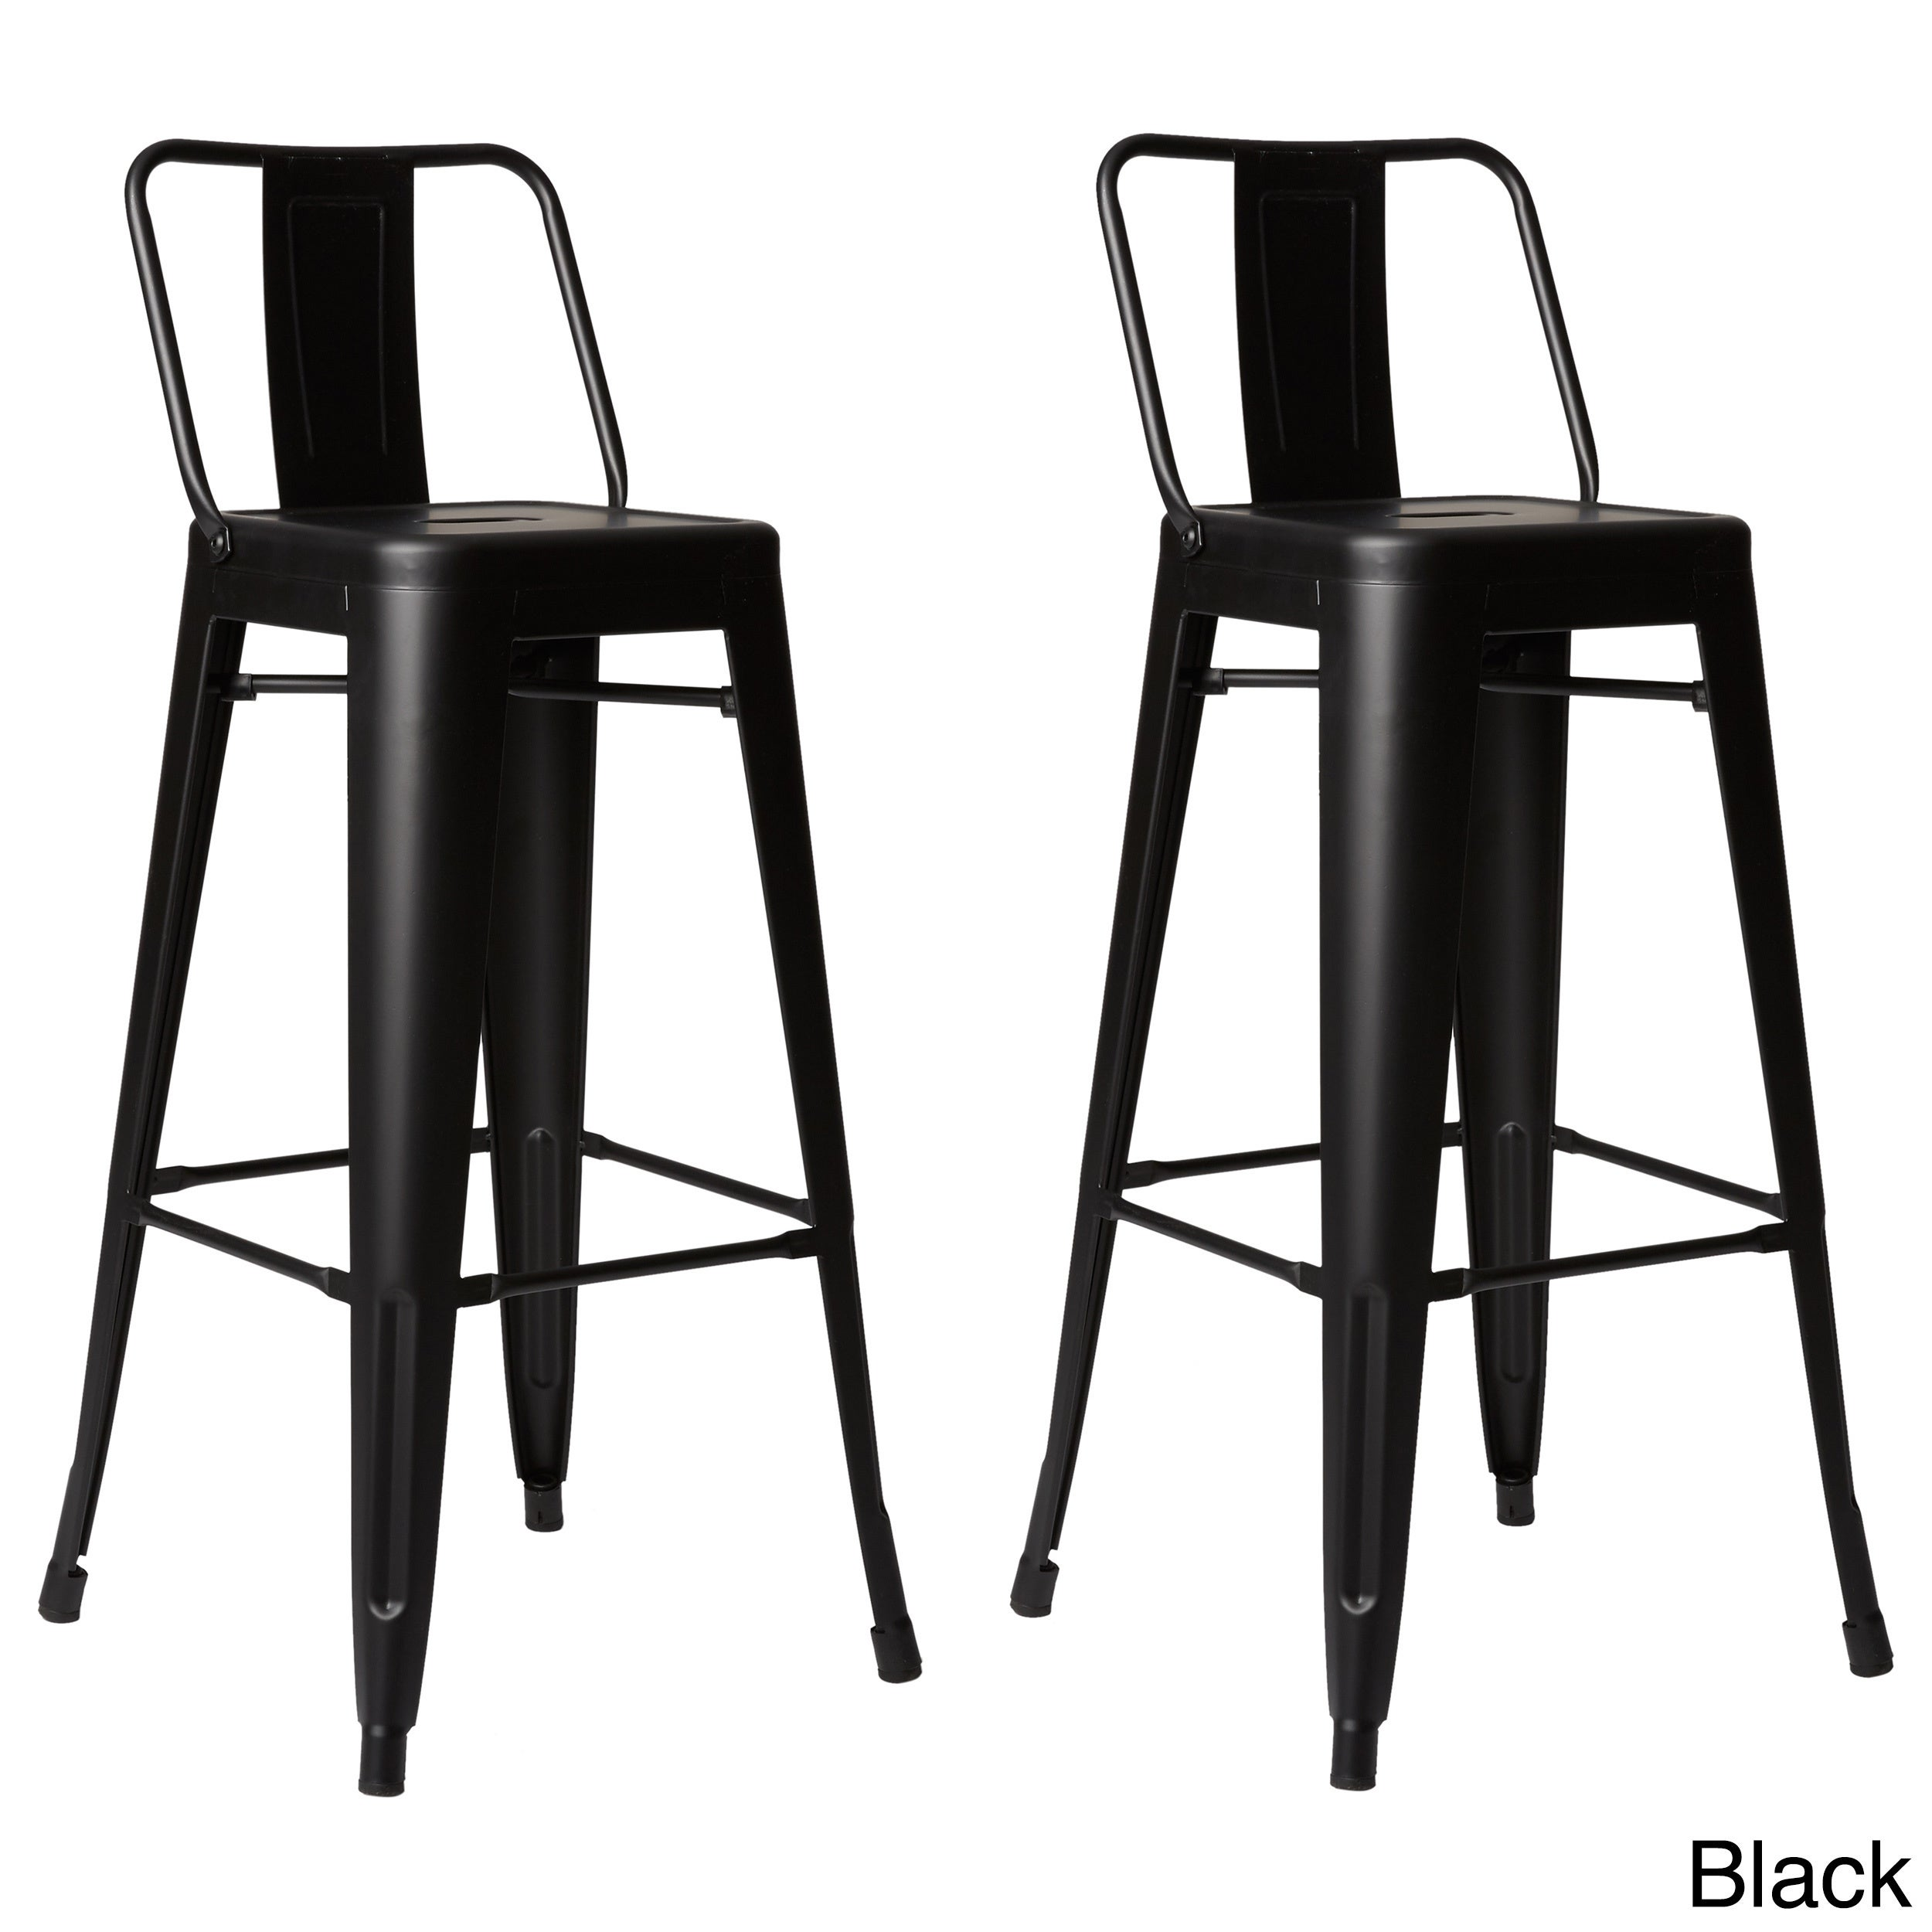 Shop Carbon Loft Coal Creek Steel 30 Inch Bar Stool In Gold Set Of